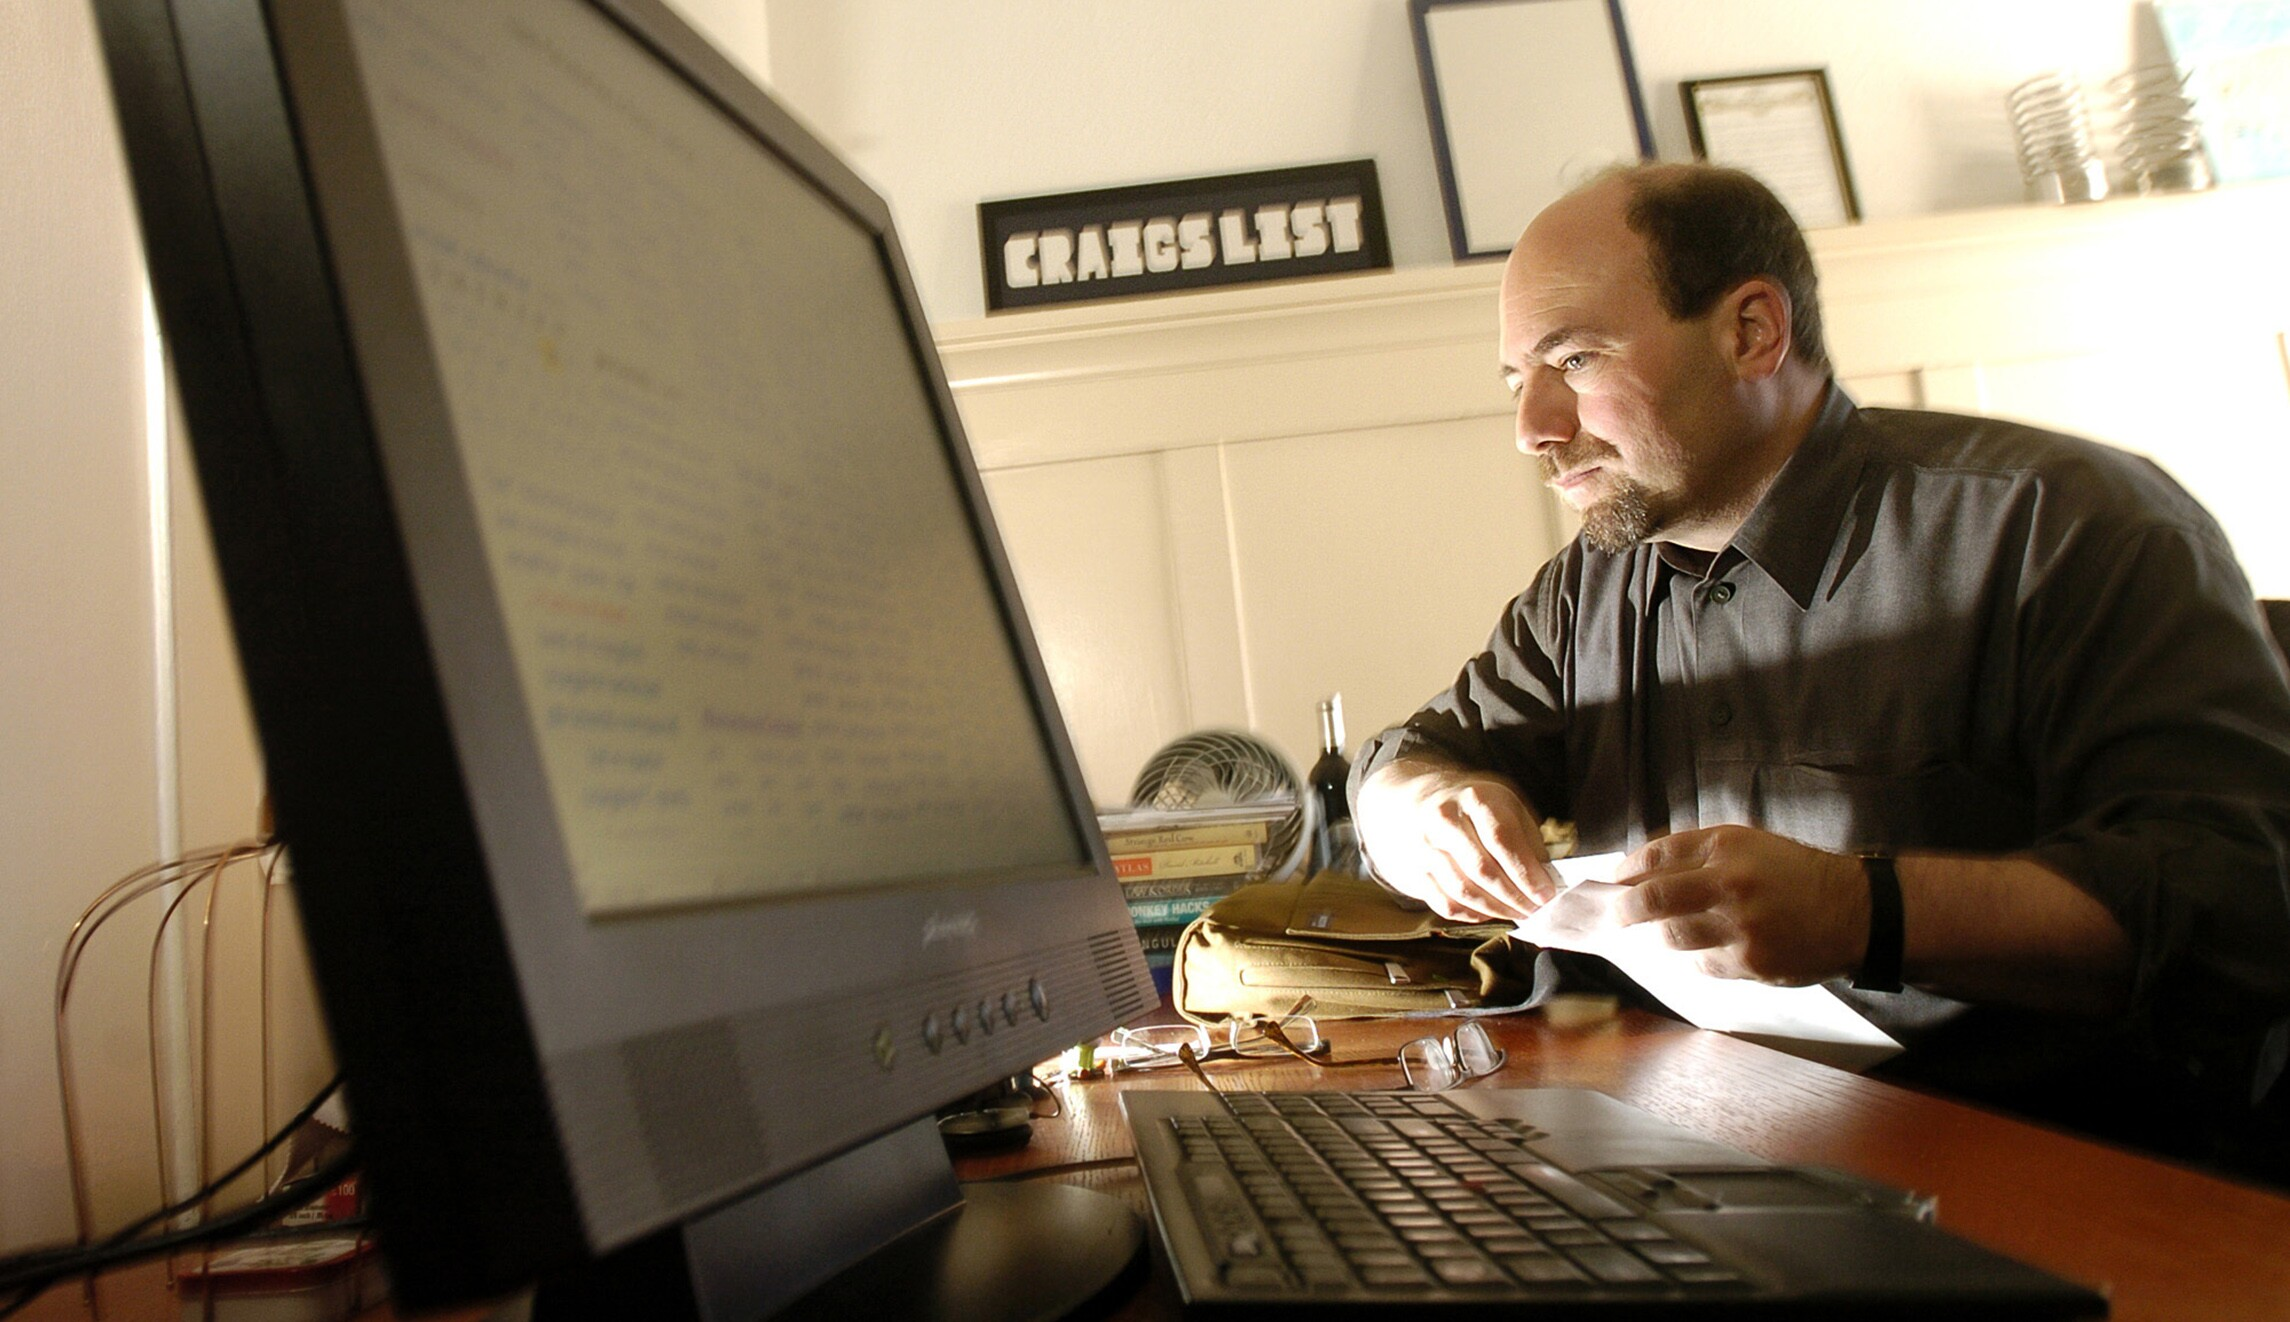 Craigslist Founder Shows How Education Funding Should Work - Craigslist conference table